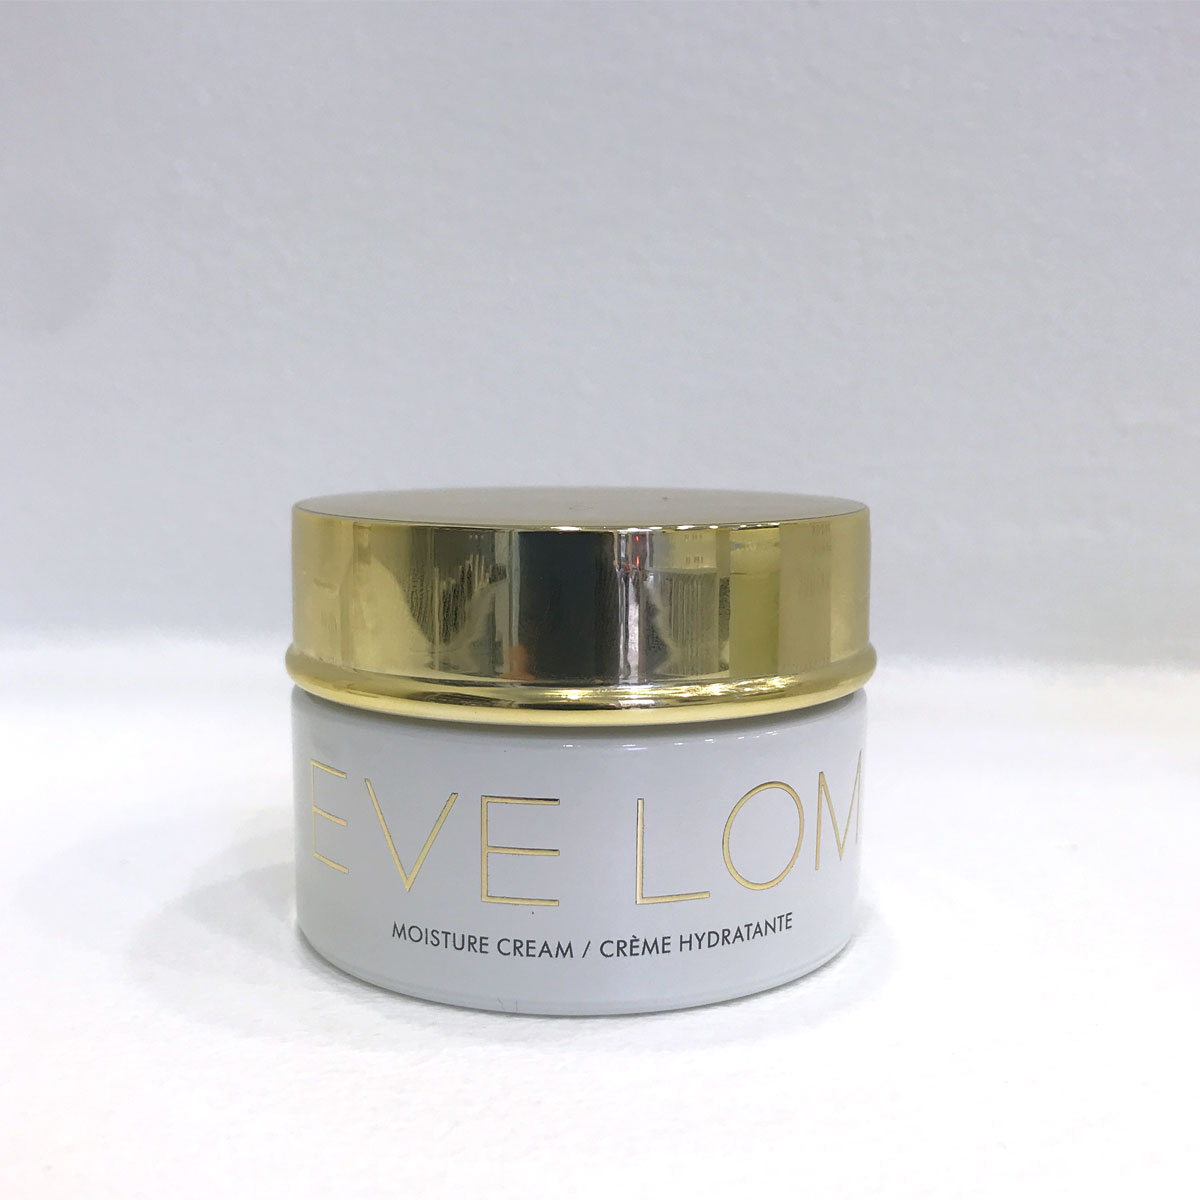 ArropameBilbaoEveLomMoistureCream